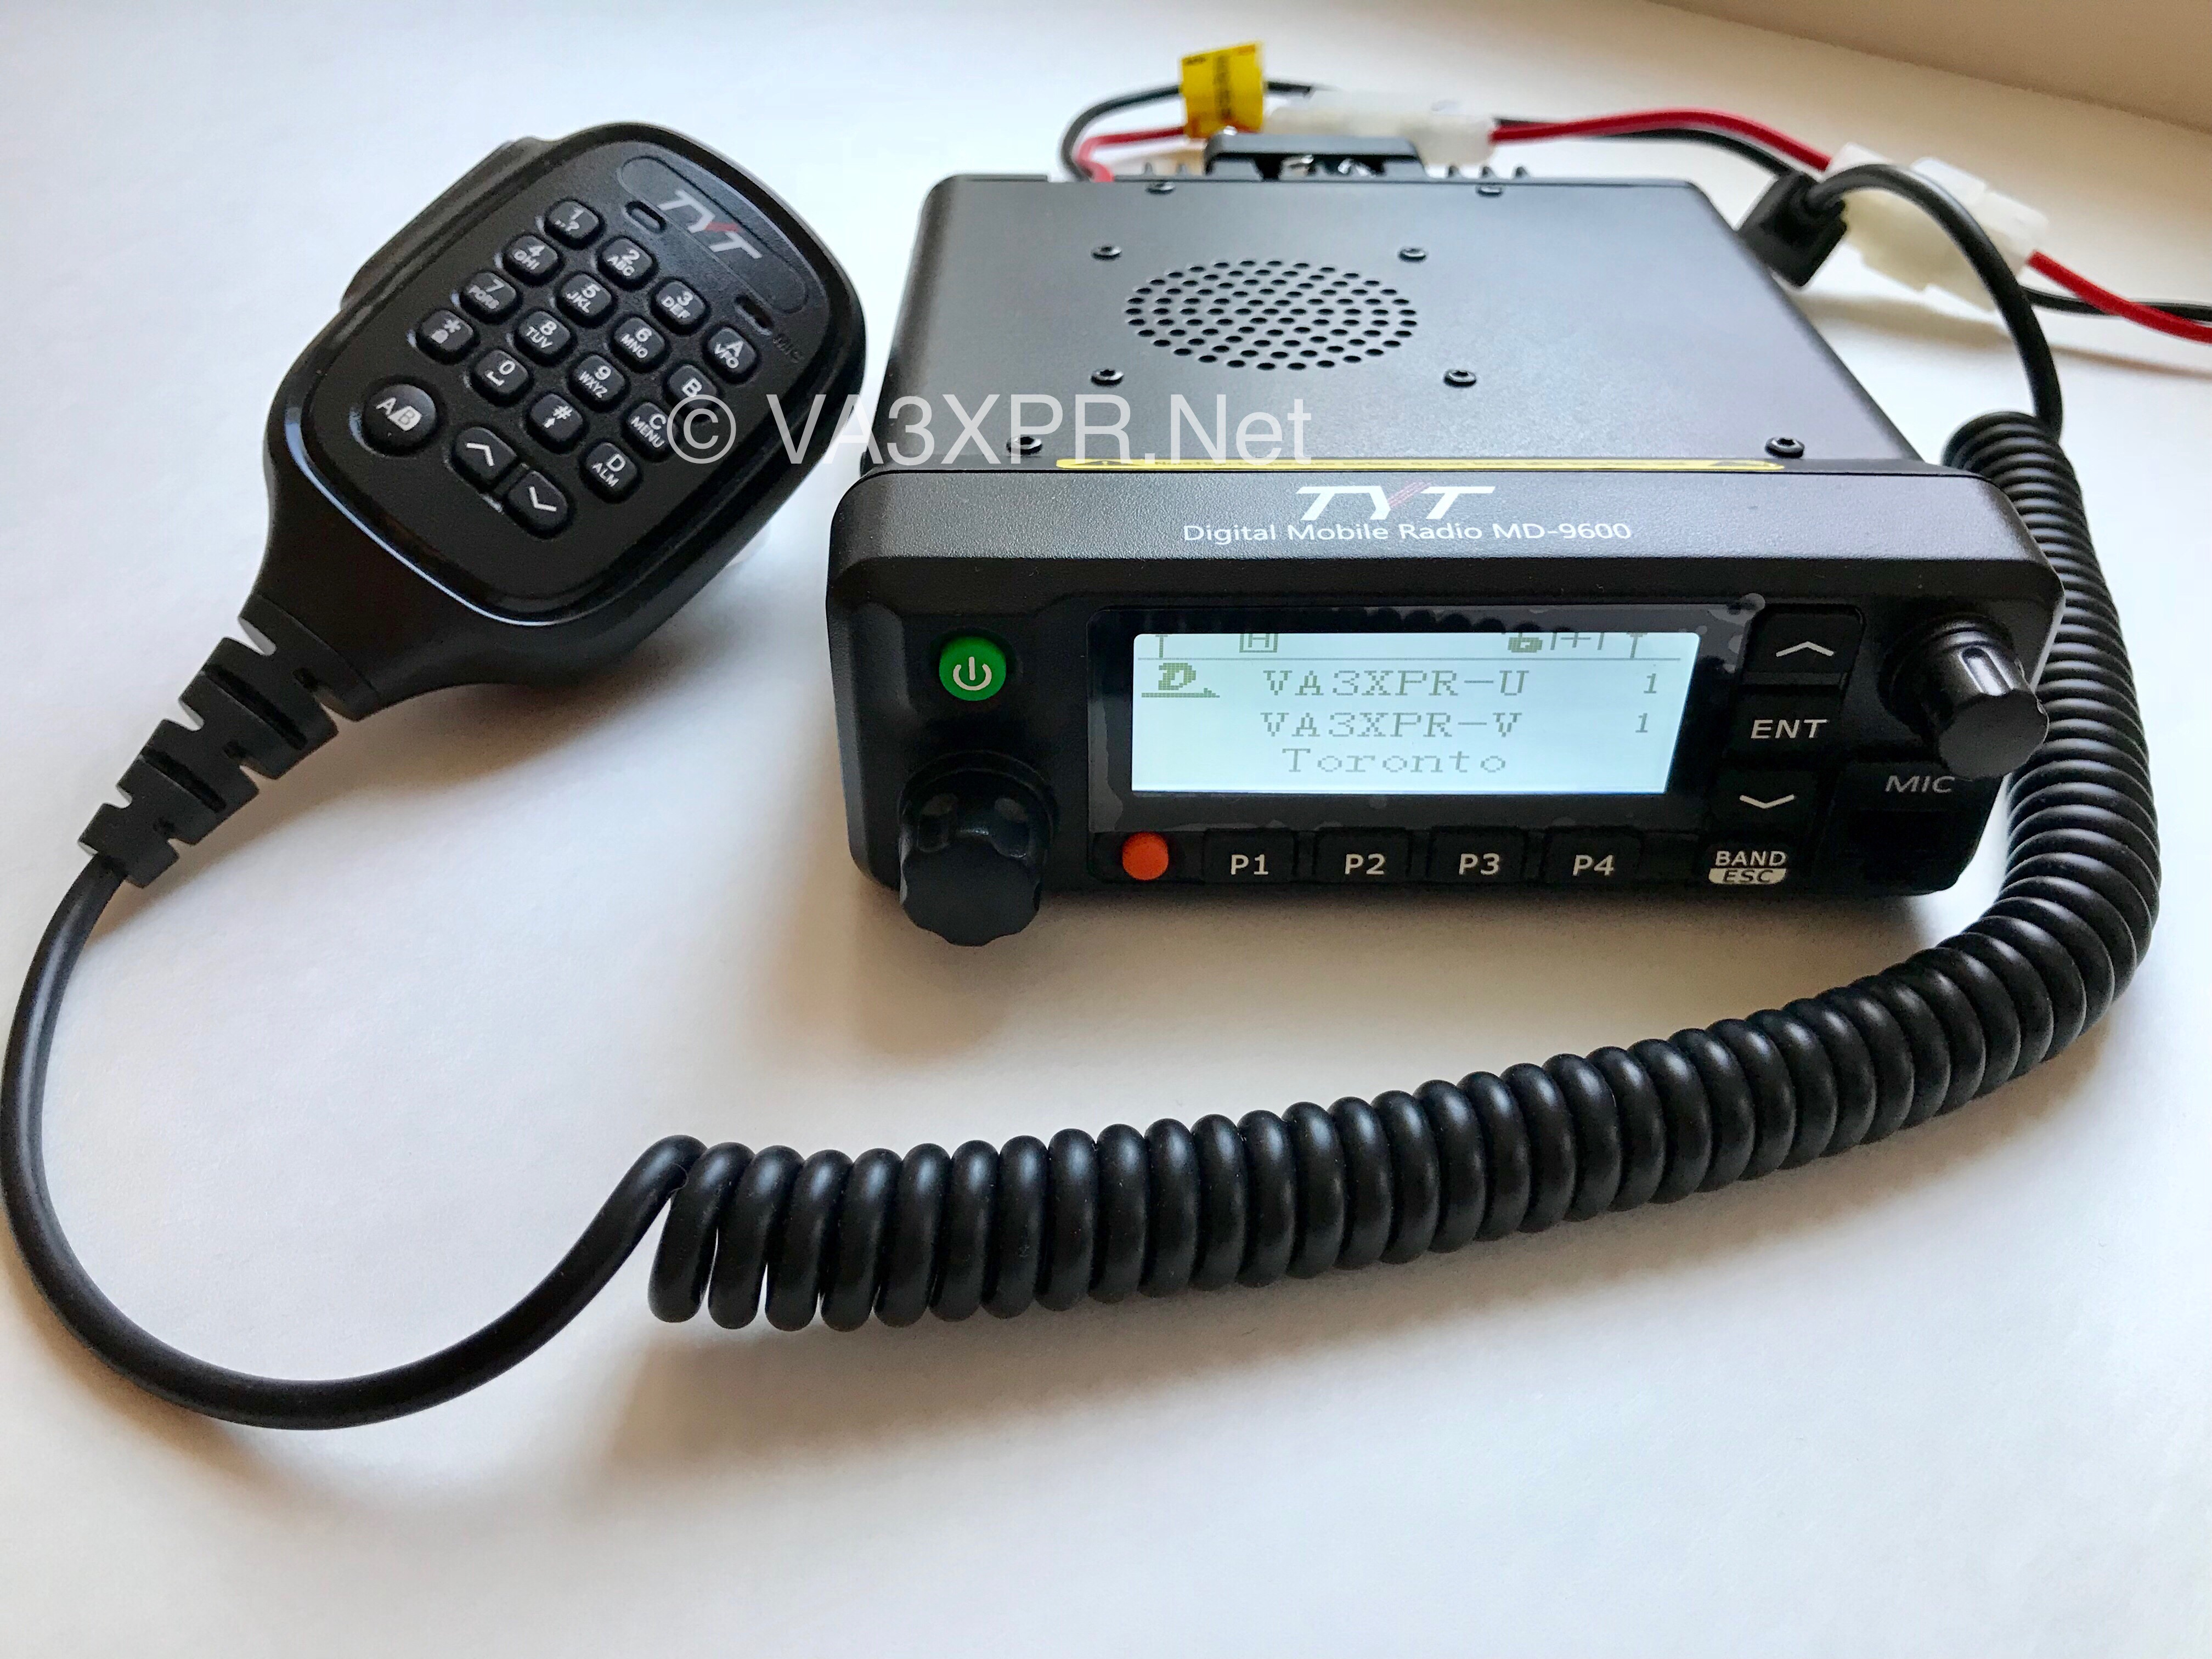 small resolution of tyt md 9600 review va3xpr